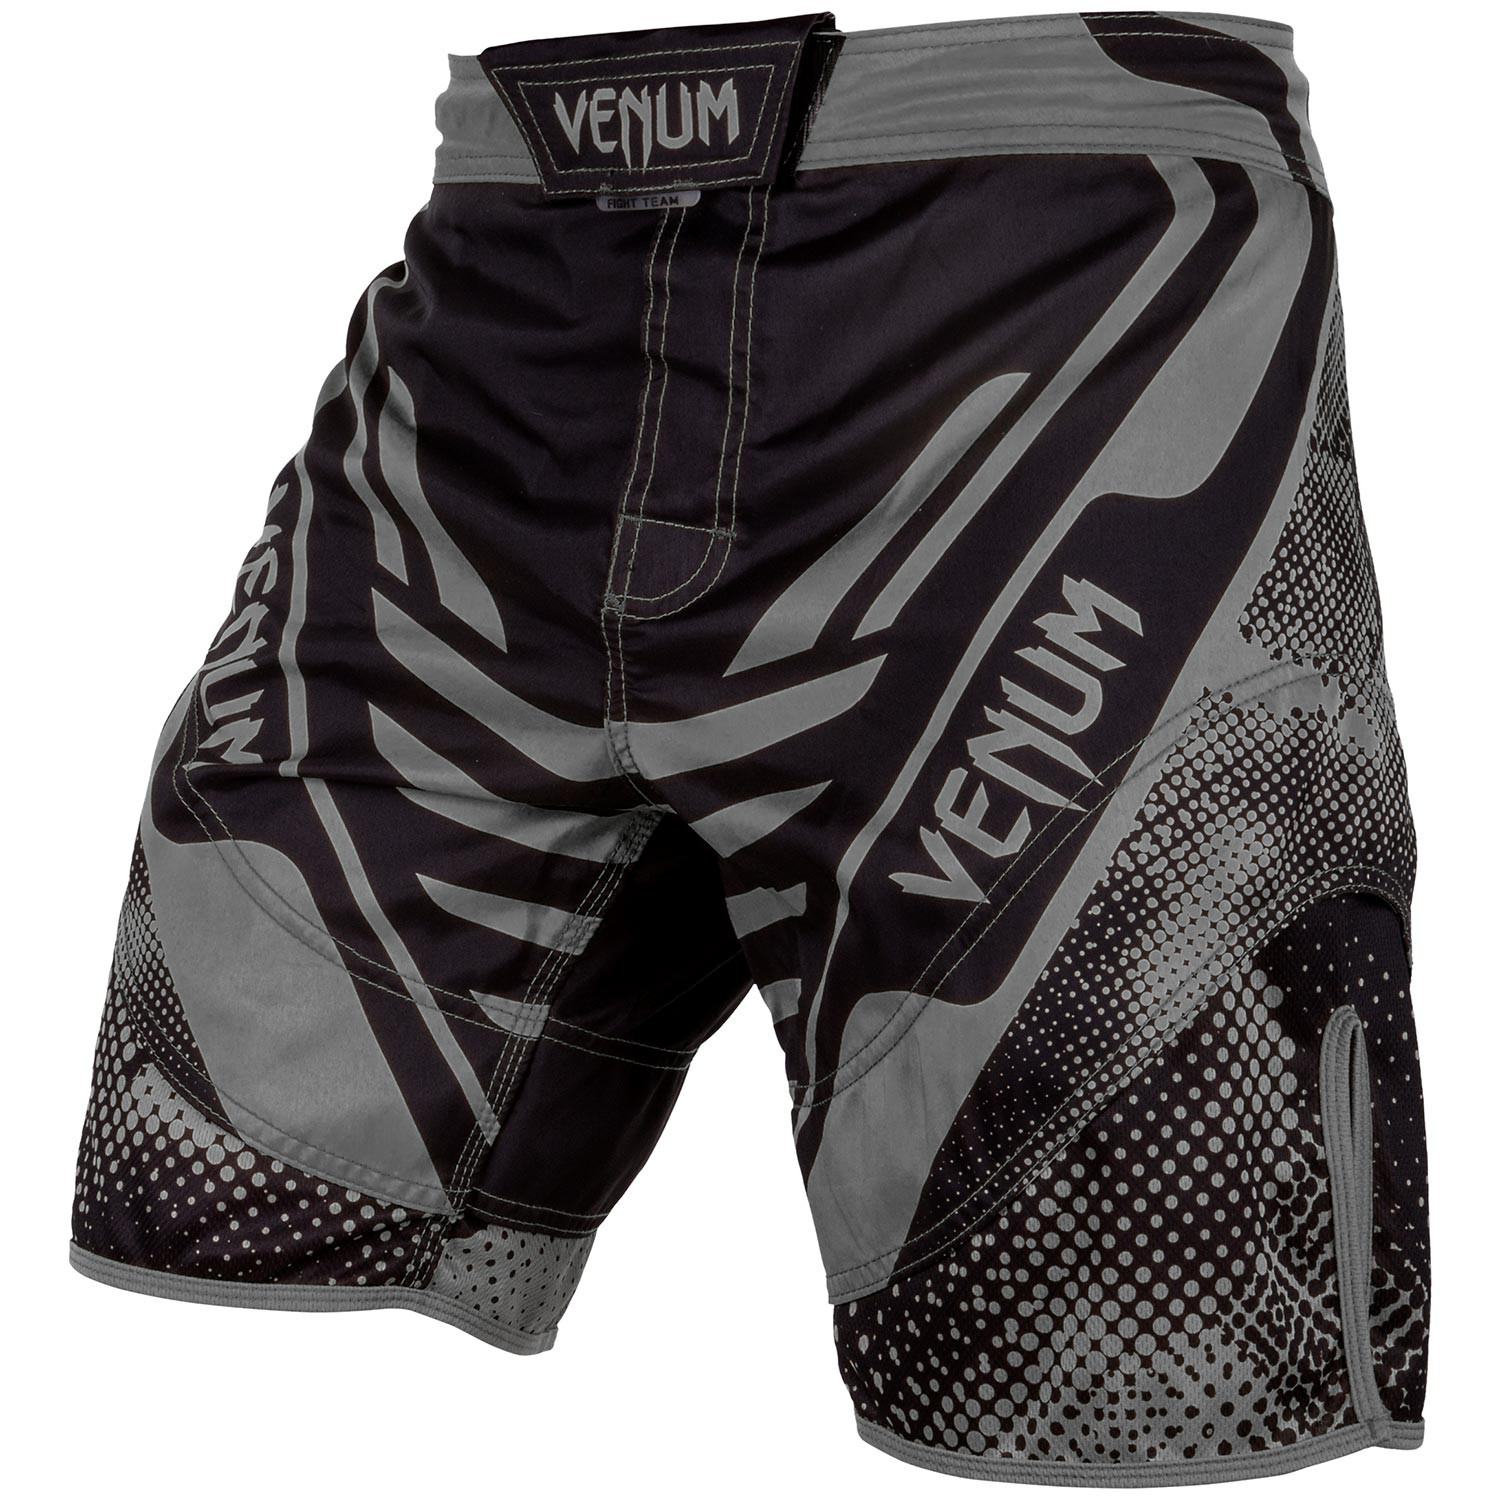 Купить Шорты Venum Technical Fightshorts Black/Grey, 4407_bk_gy